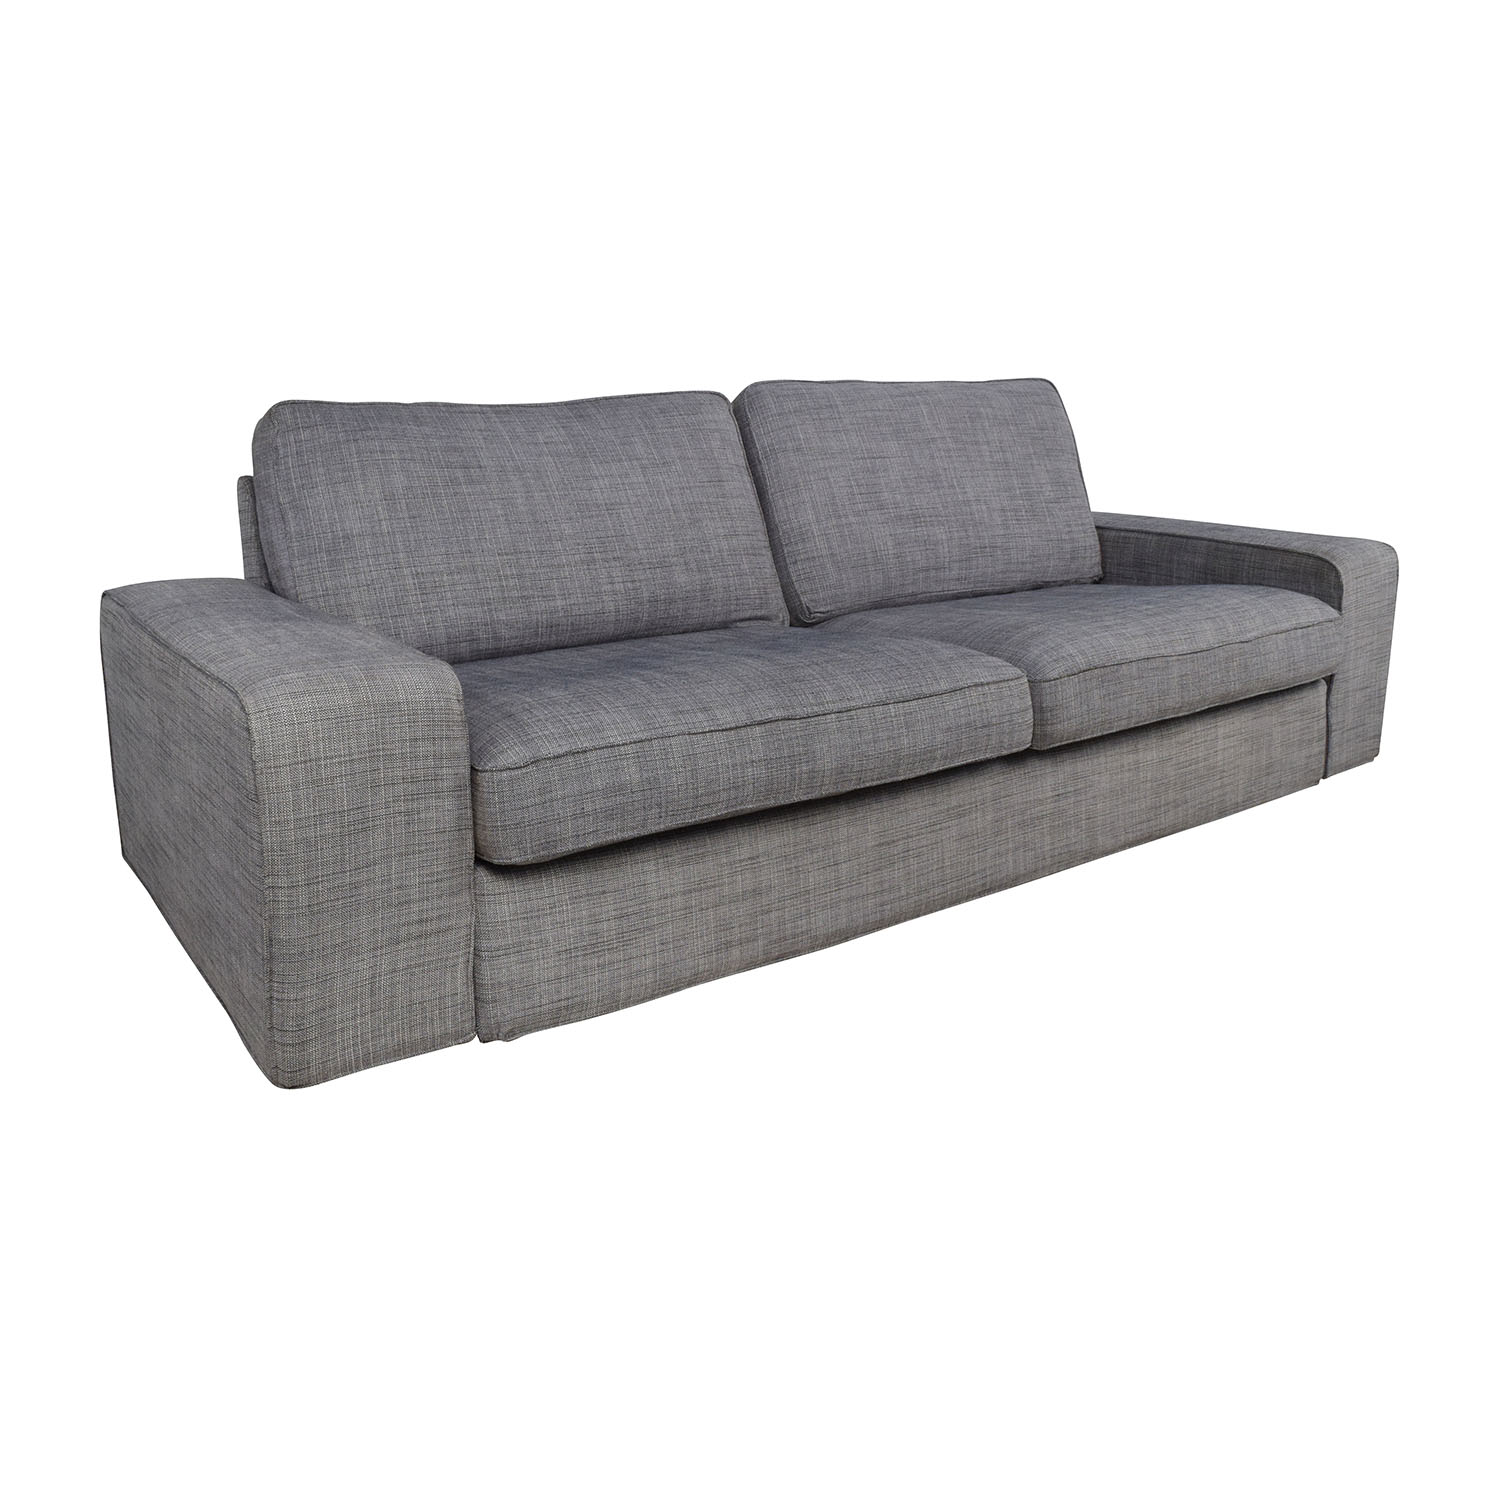 Ikea gray sofa kivik sofa with chaise orrsta light gray for Ikea gray sofa